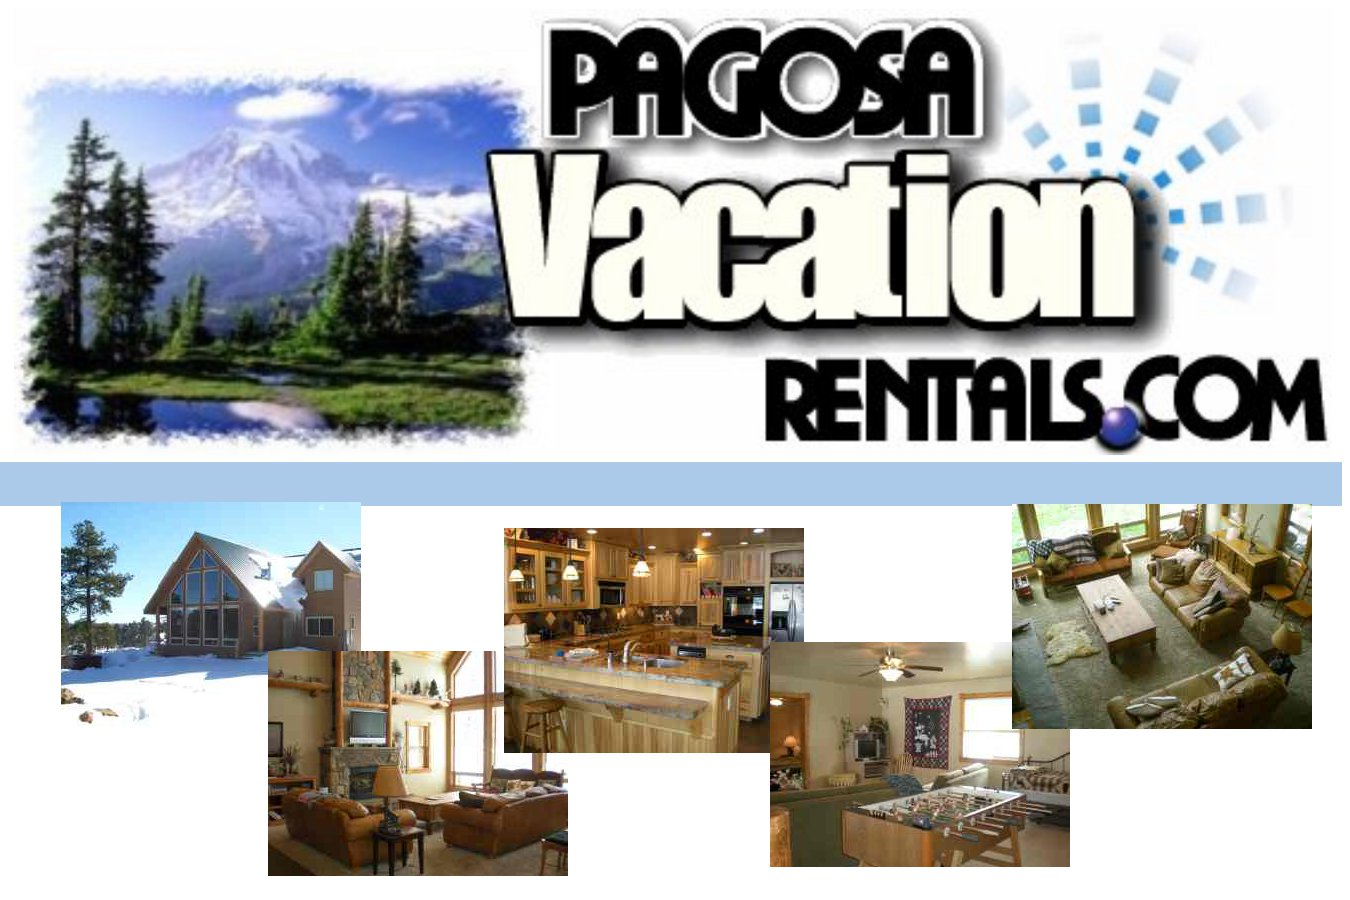 Pagosa Vacation Rentals.com